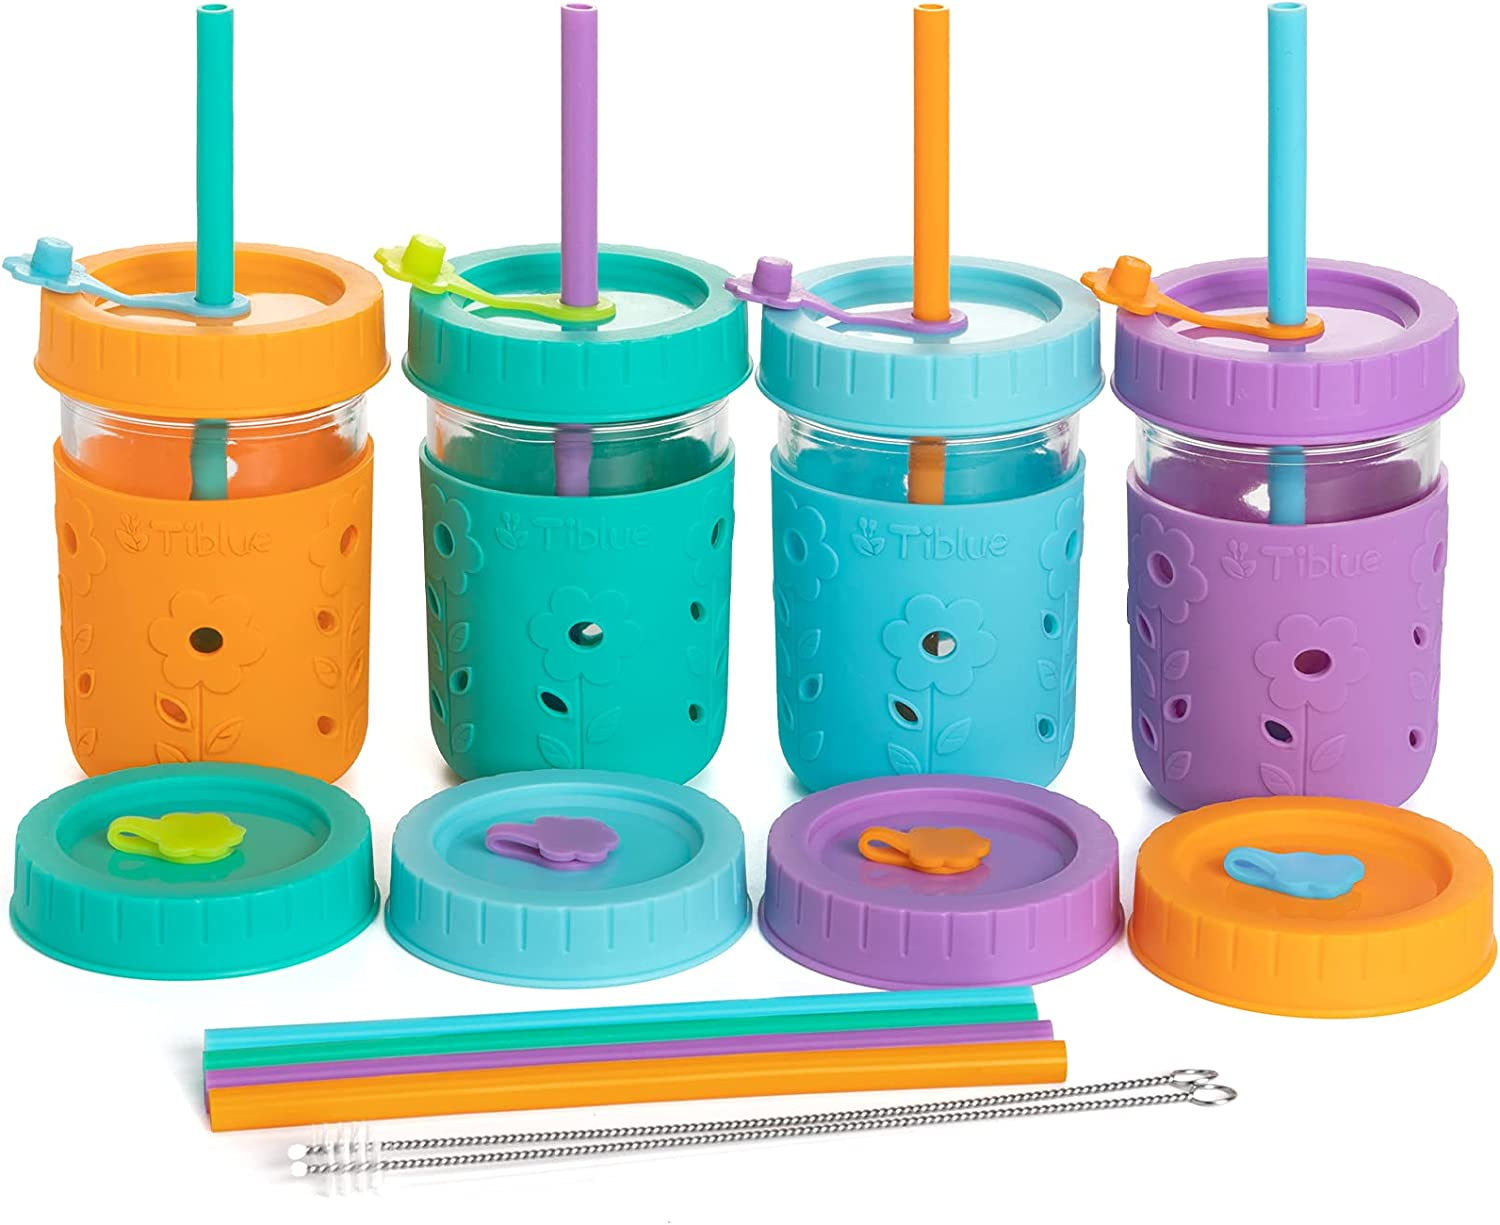 4 Pack Kids & Toddler Cups - 8 OZ Glass Mason Jars Spill Proof Snack Smoothie Cups with Leak Proof Regular Lids & Silicone Straws, Sleeves, Stoppers - BPA FREE Baby Cup Kid Tumbler for Drinking